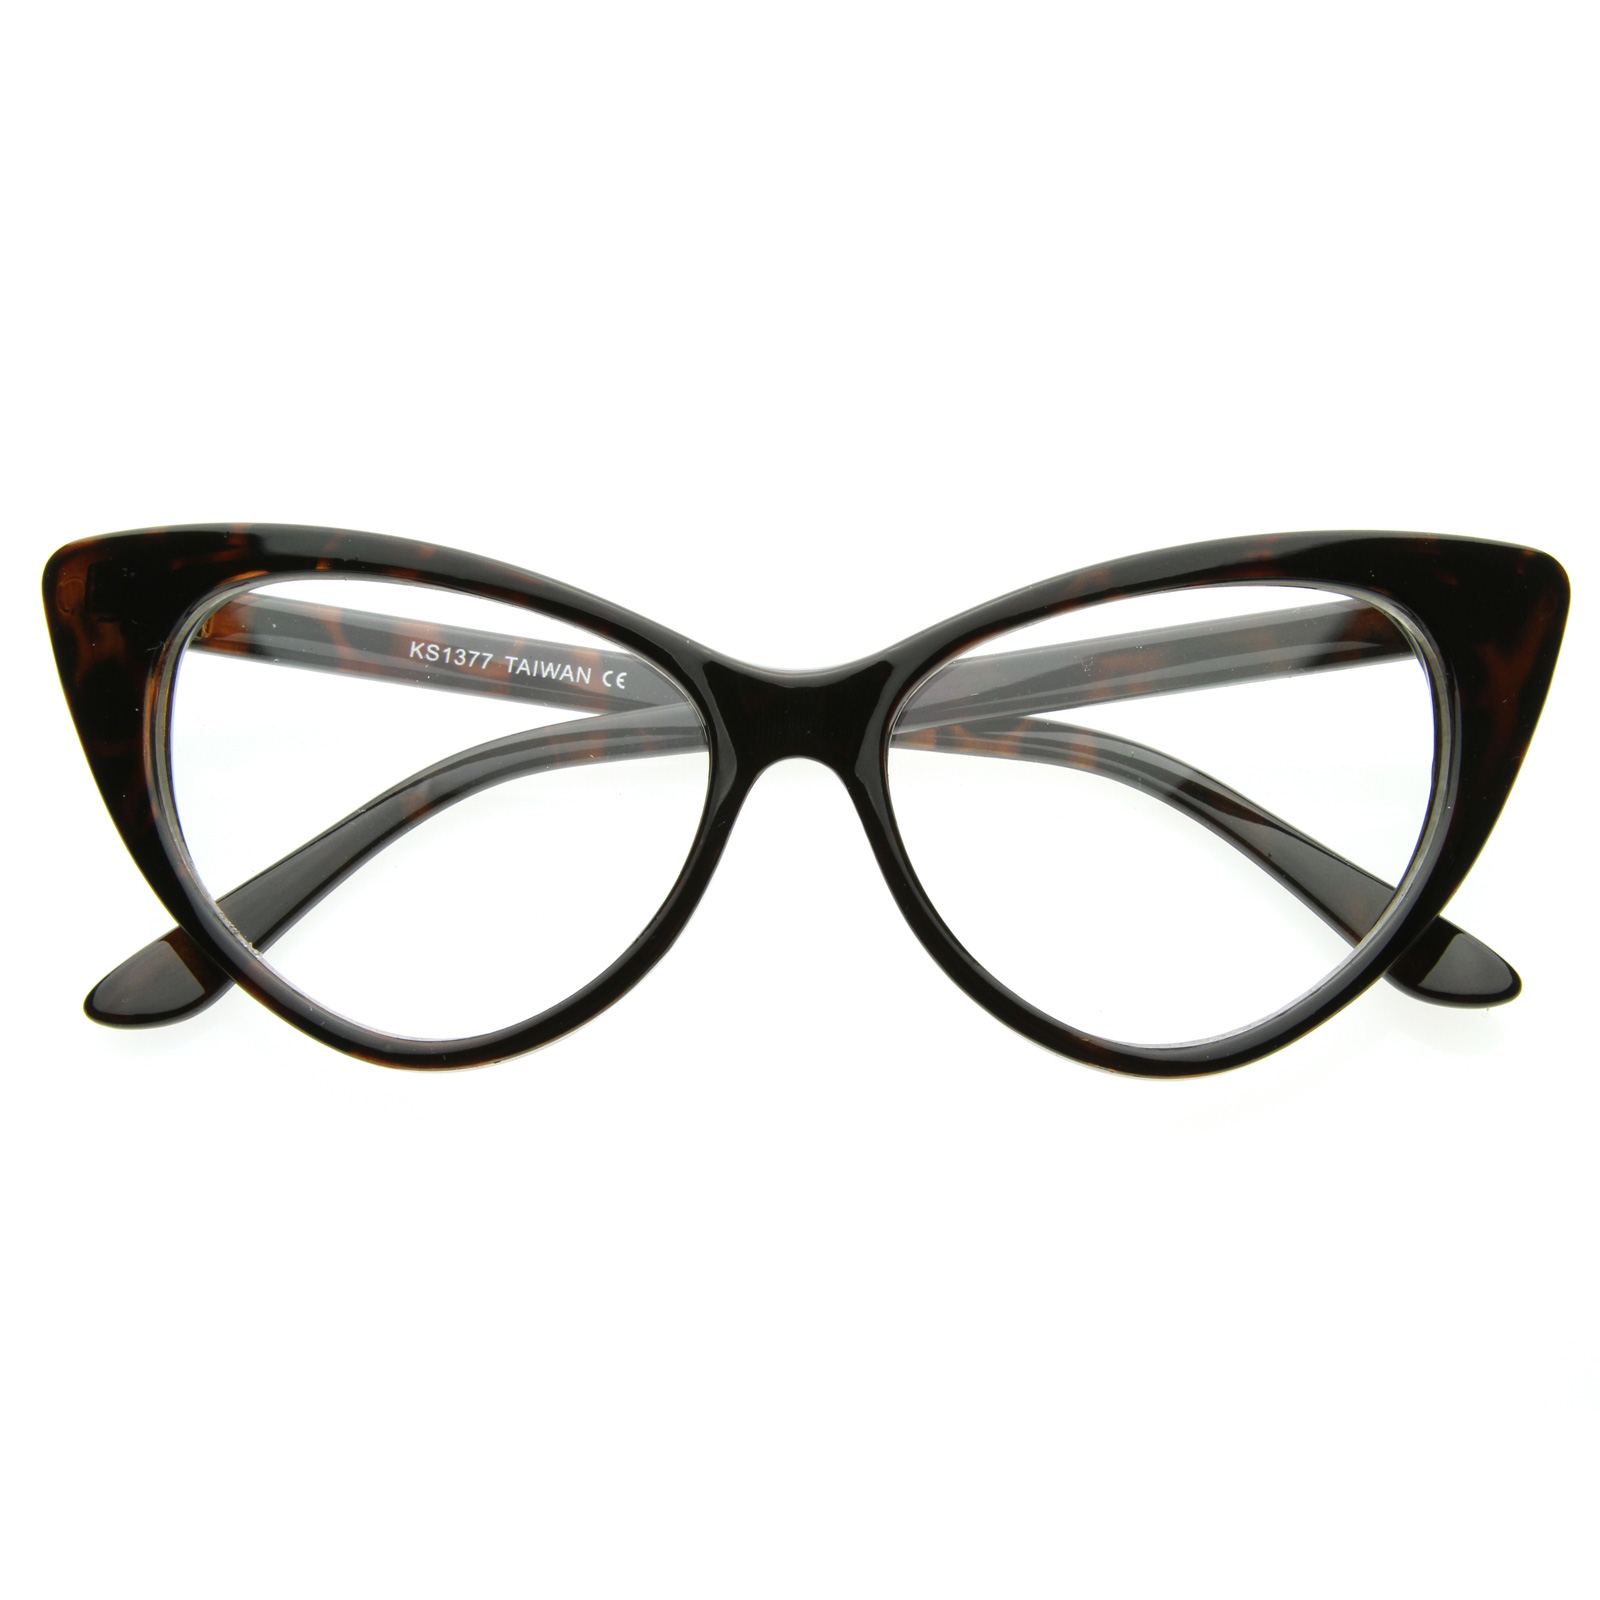 1960s-Vintage-Inspired-Mod-Fashion-Clear-Lens-Super-Cat-Eye-Glasses-Cateye-8435